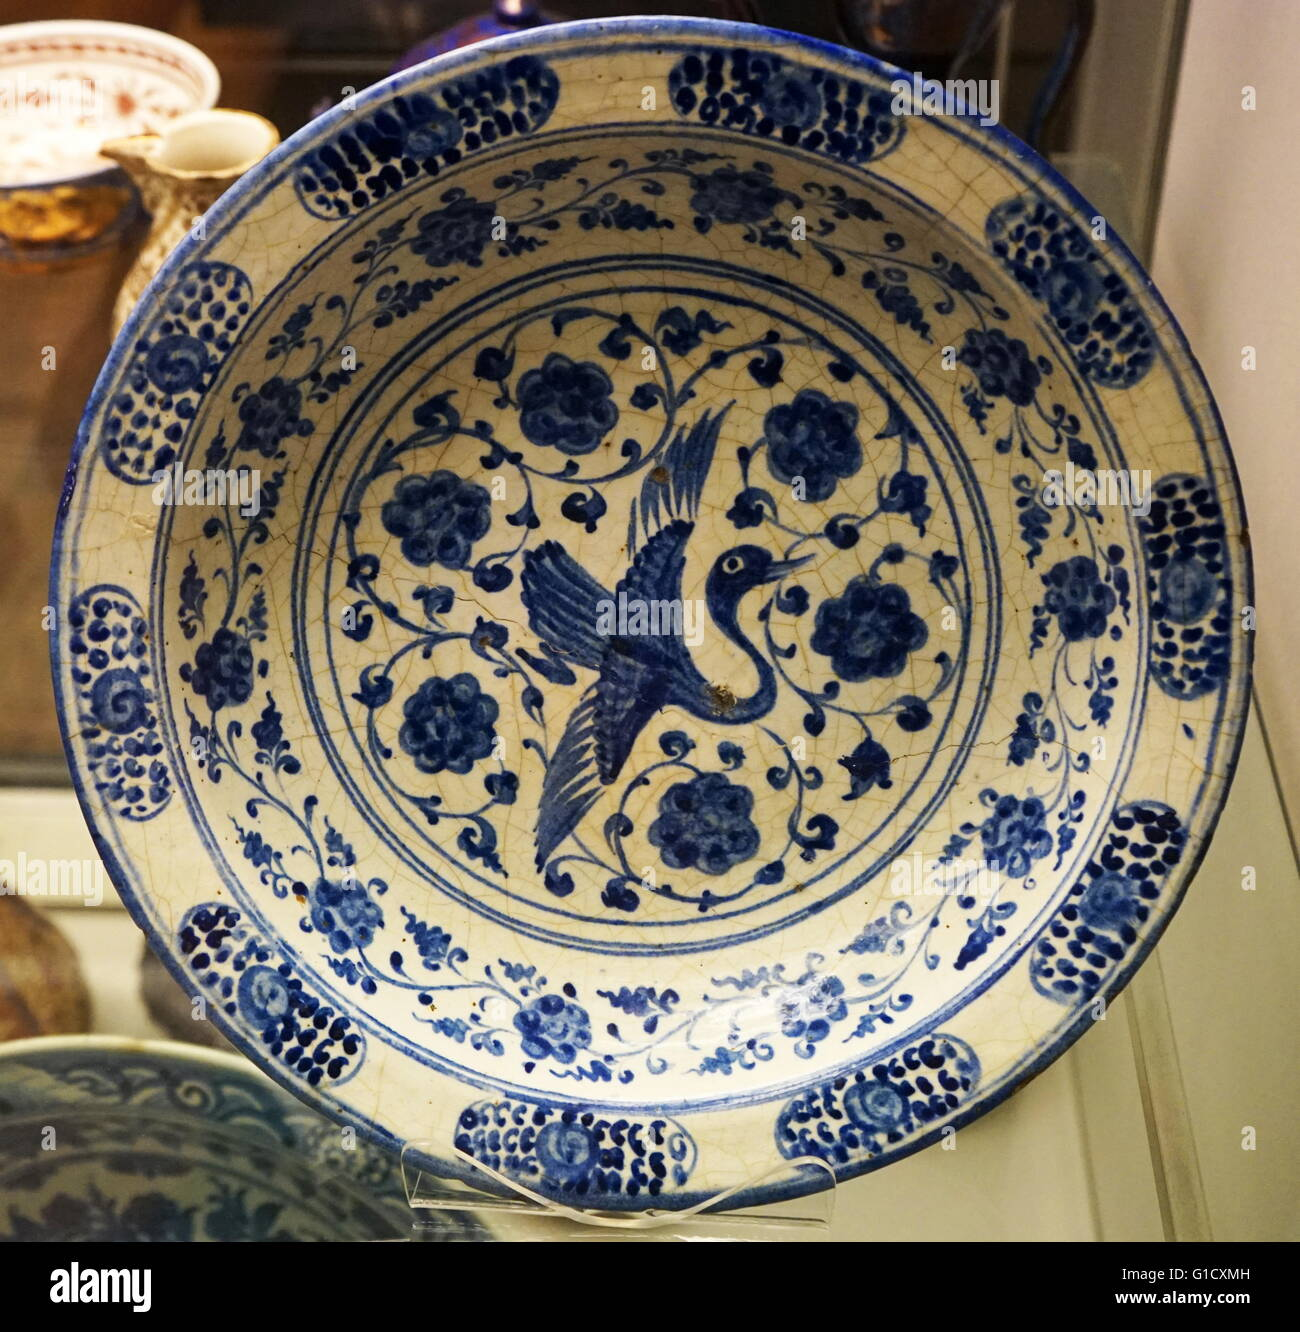 Dish with flying crane and arabesque design, from Iran. Dated 16th Century - Stock Image